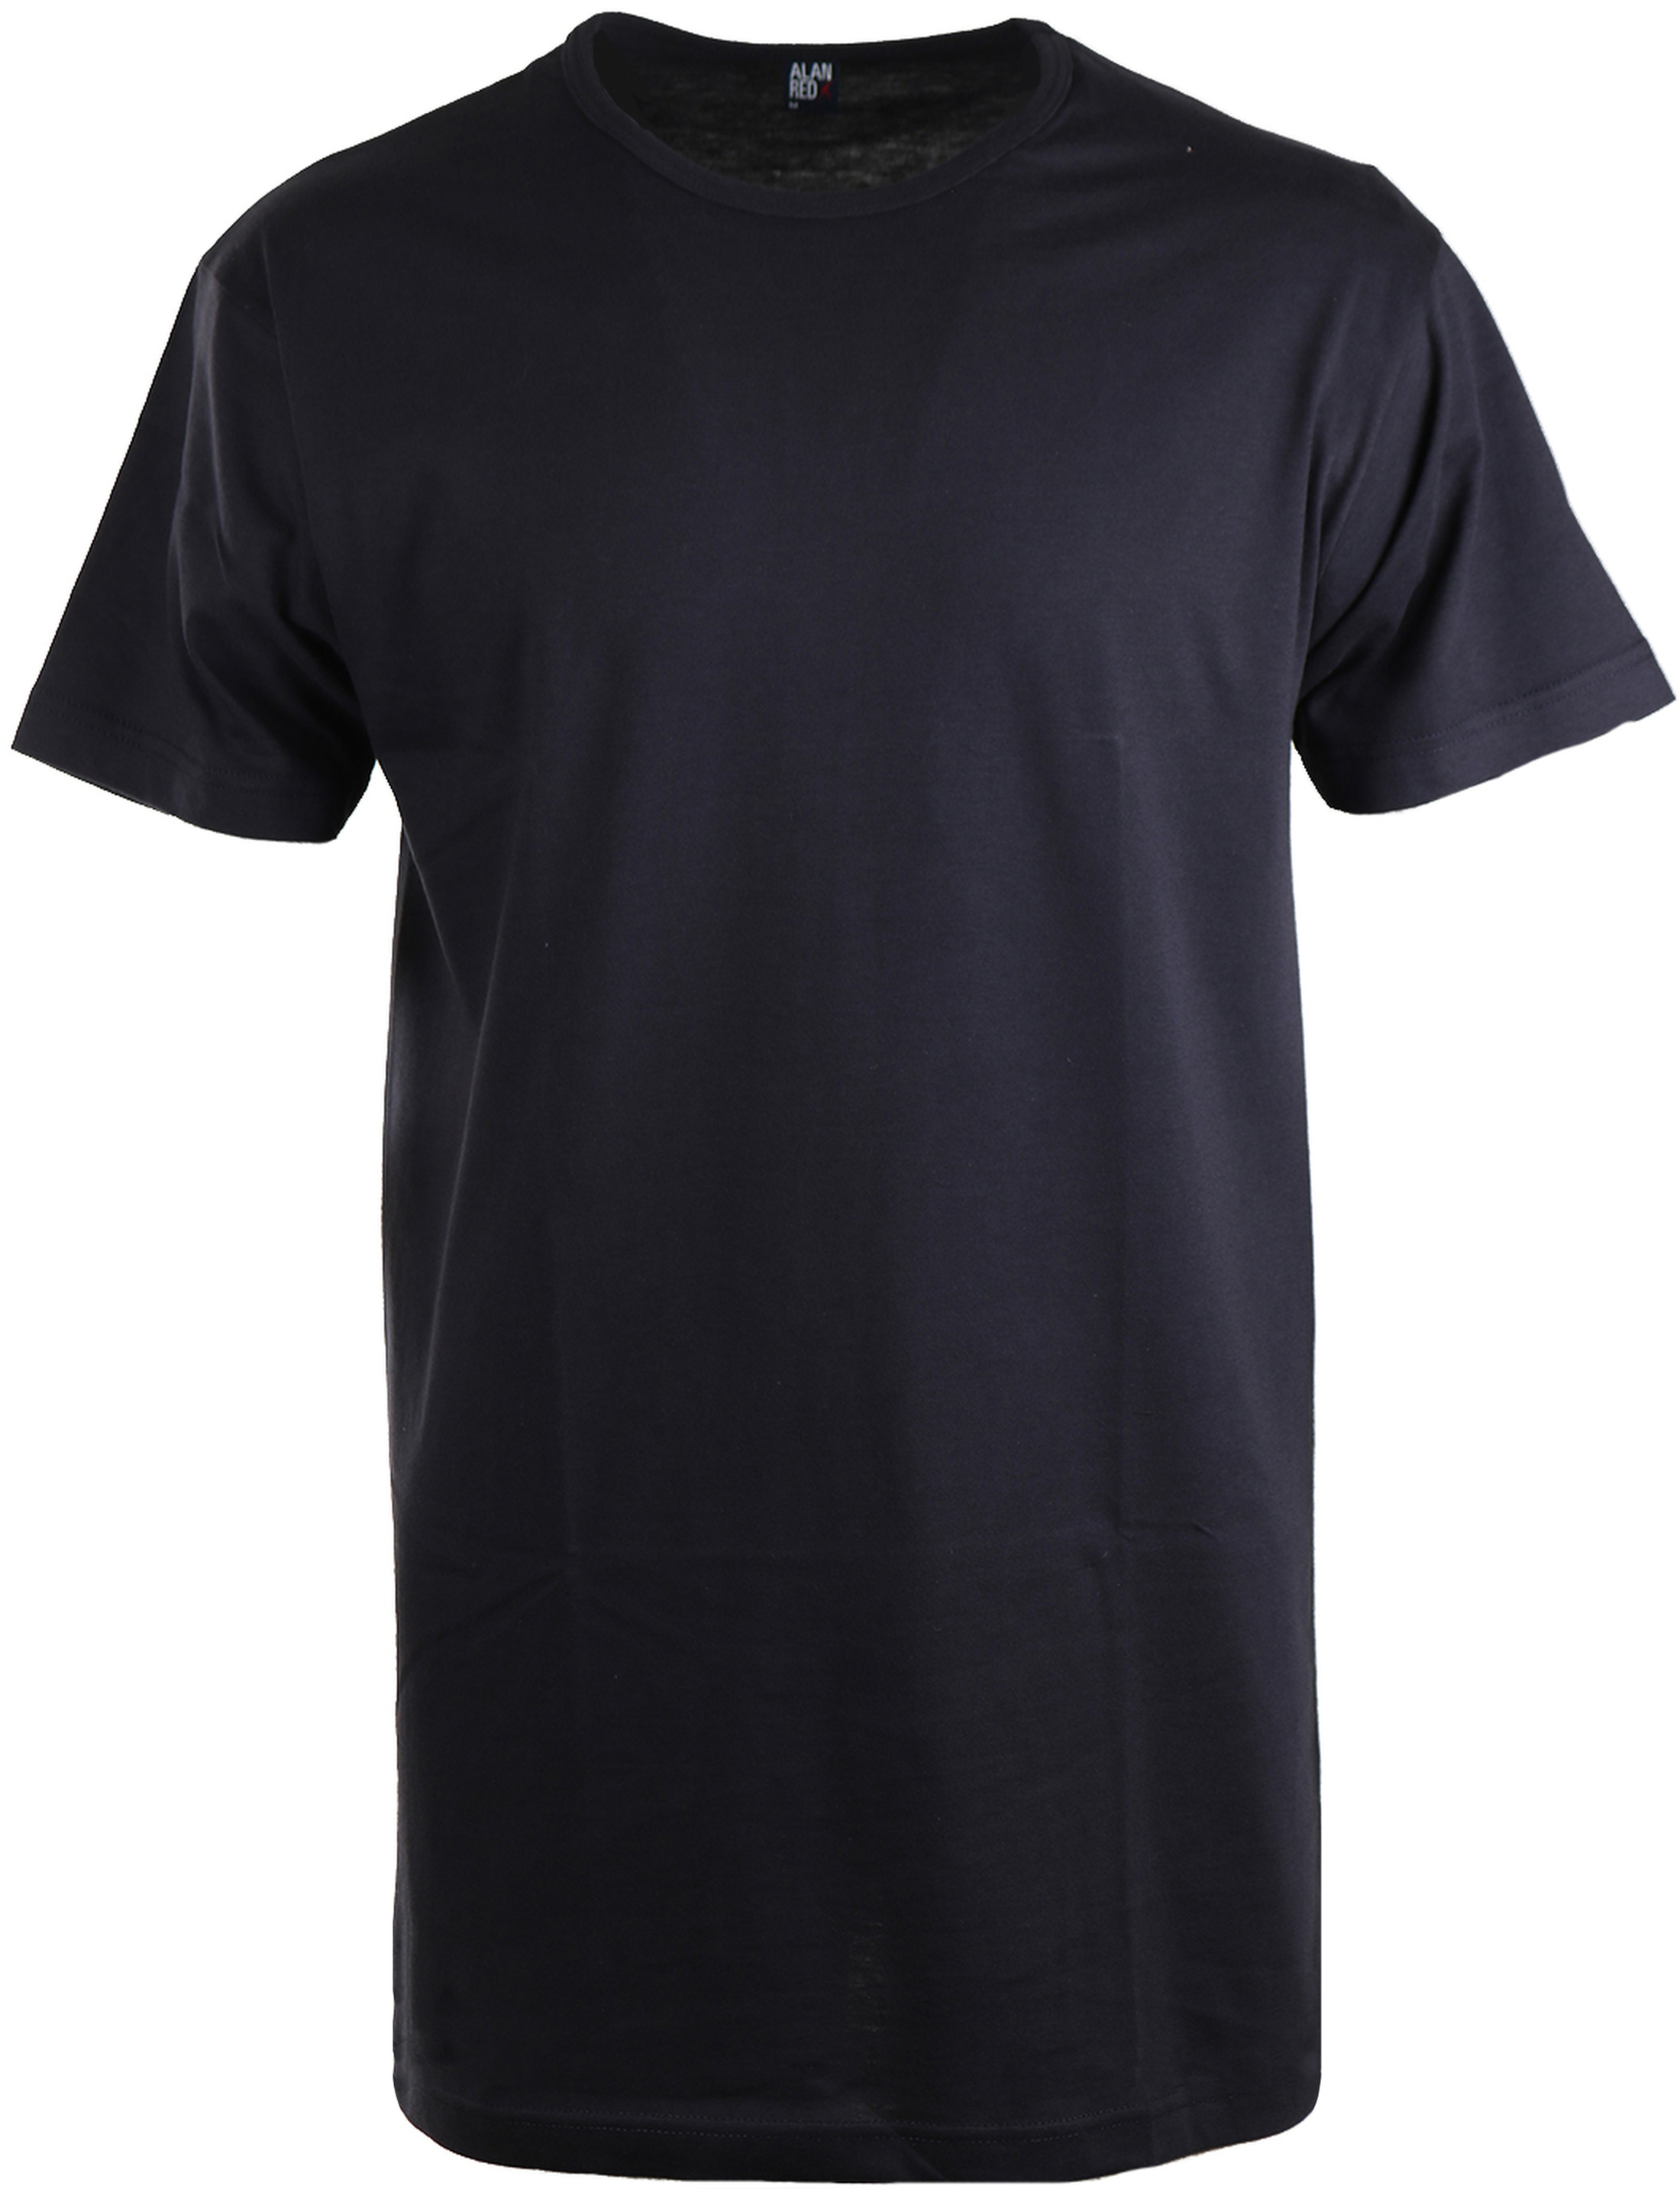 Alan Red Derby Extra Lang T-Shirt Navy (1Pack) foto 0